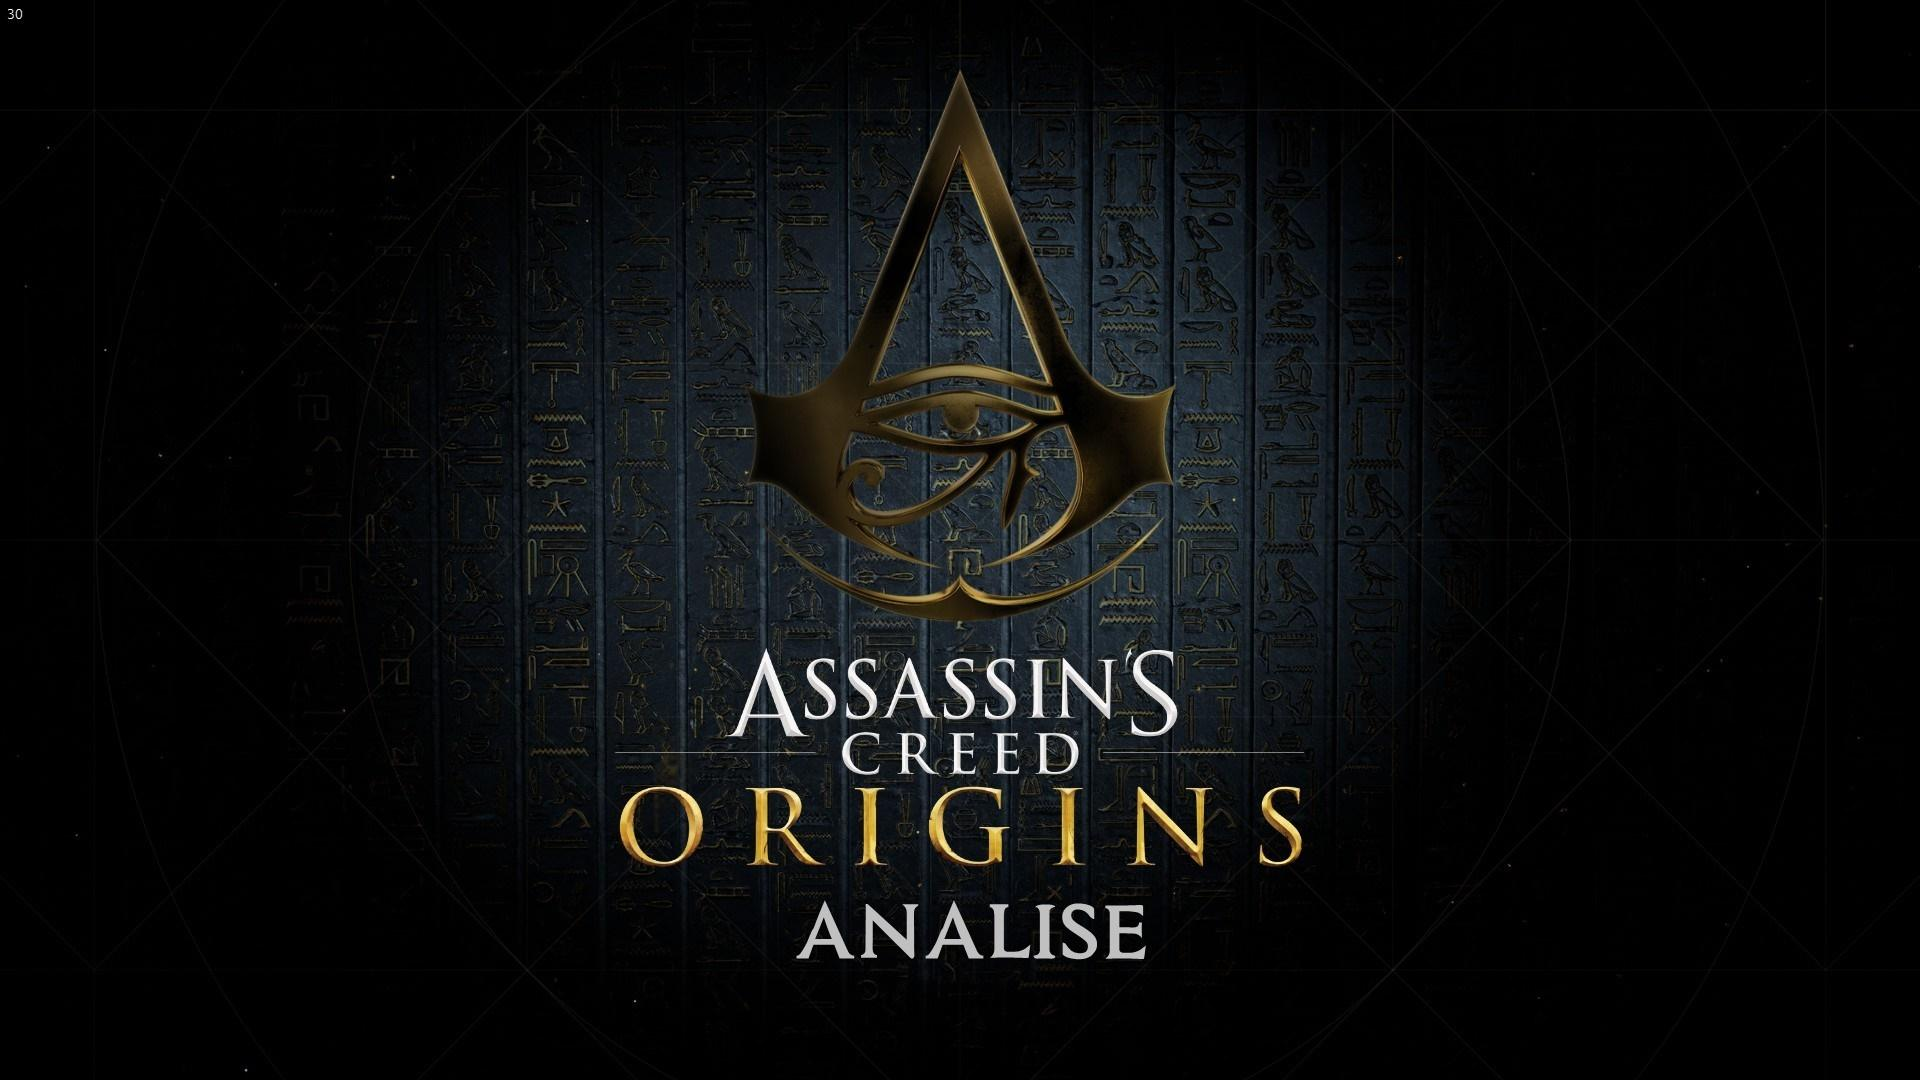 Assassin's Creed Origins: Análise